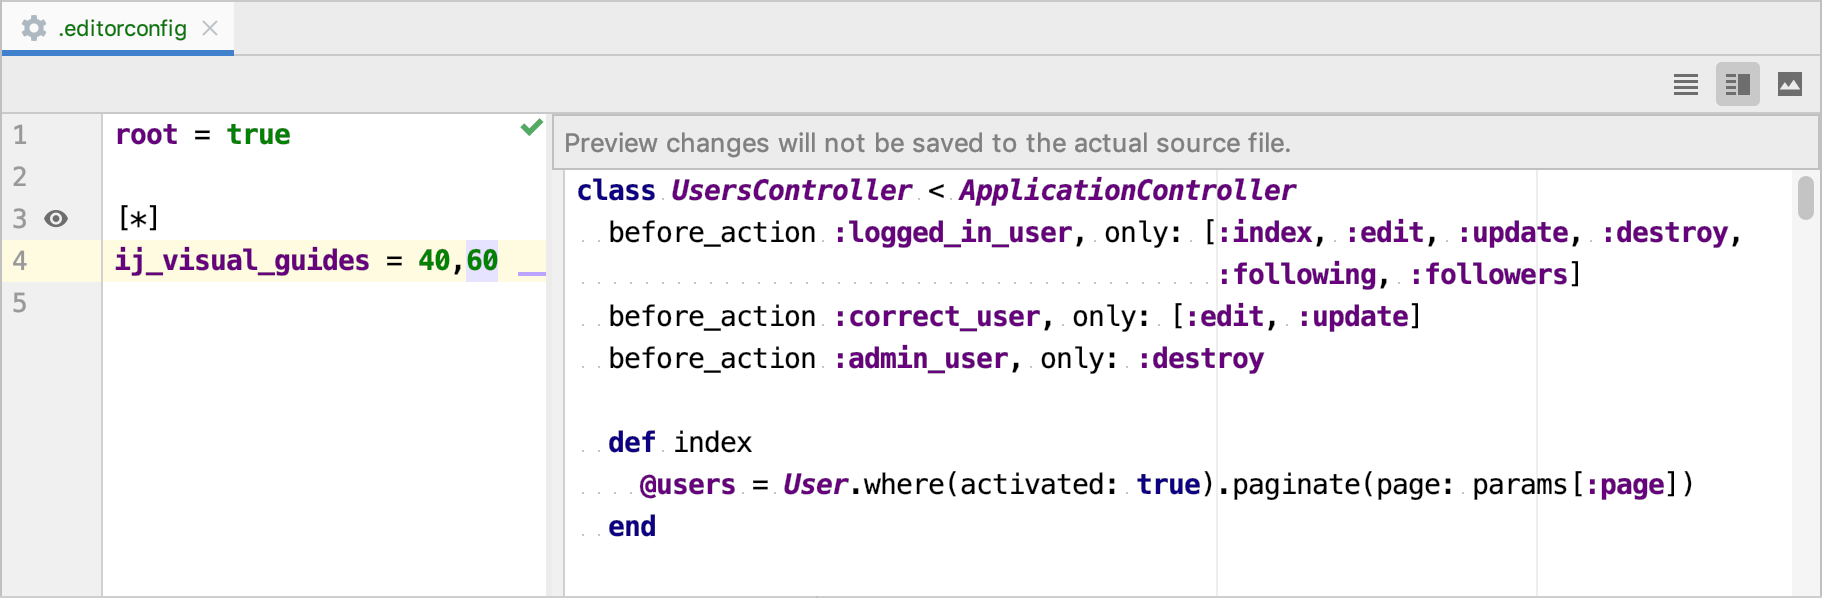 editorconfig preview